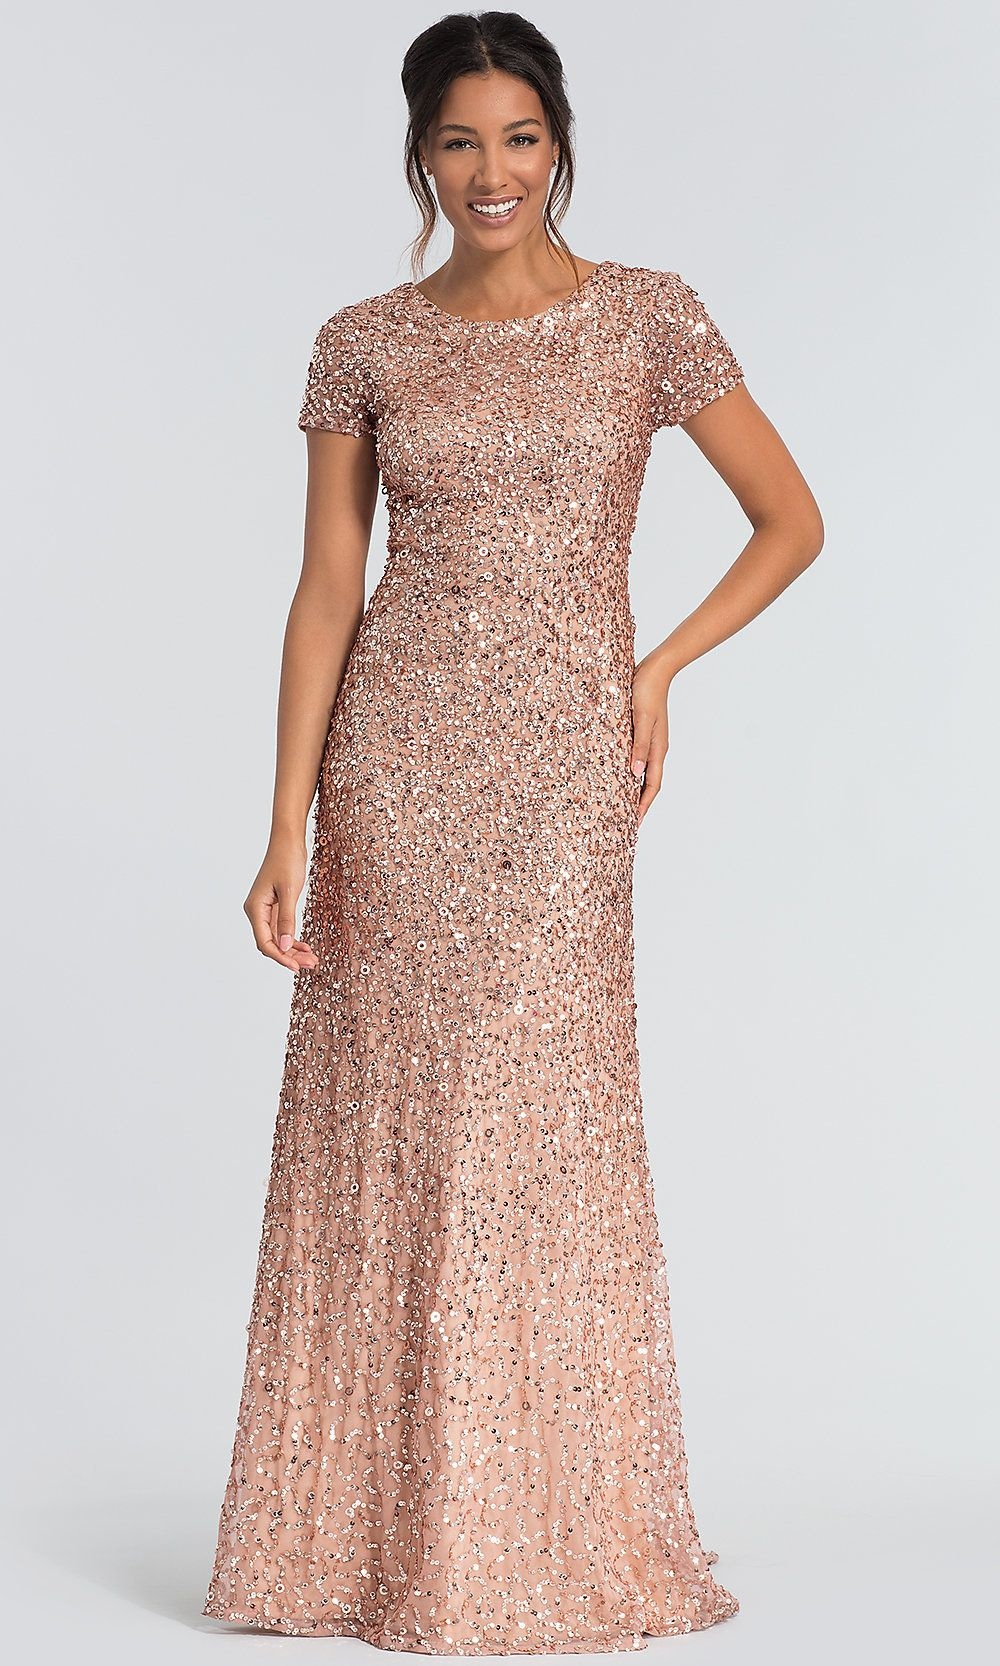 Short Sleeve Sequin Mob Dress By Adrianna Papell Mob Dresses Mother Of The Bride Dresses Long Bridesmaid Dresses With Sleeves